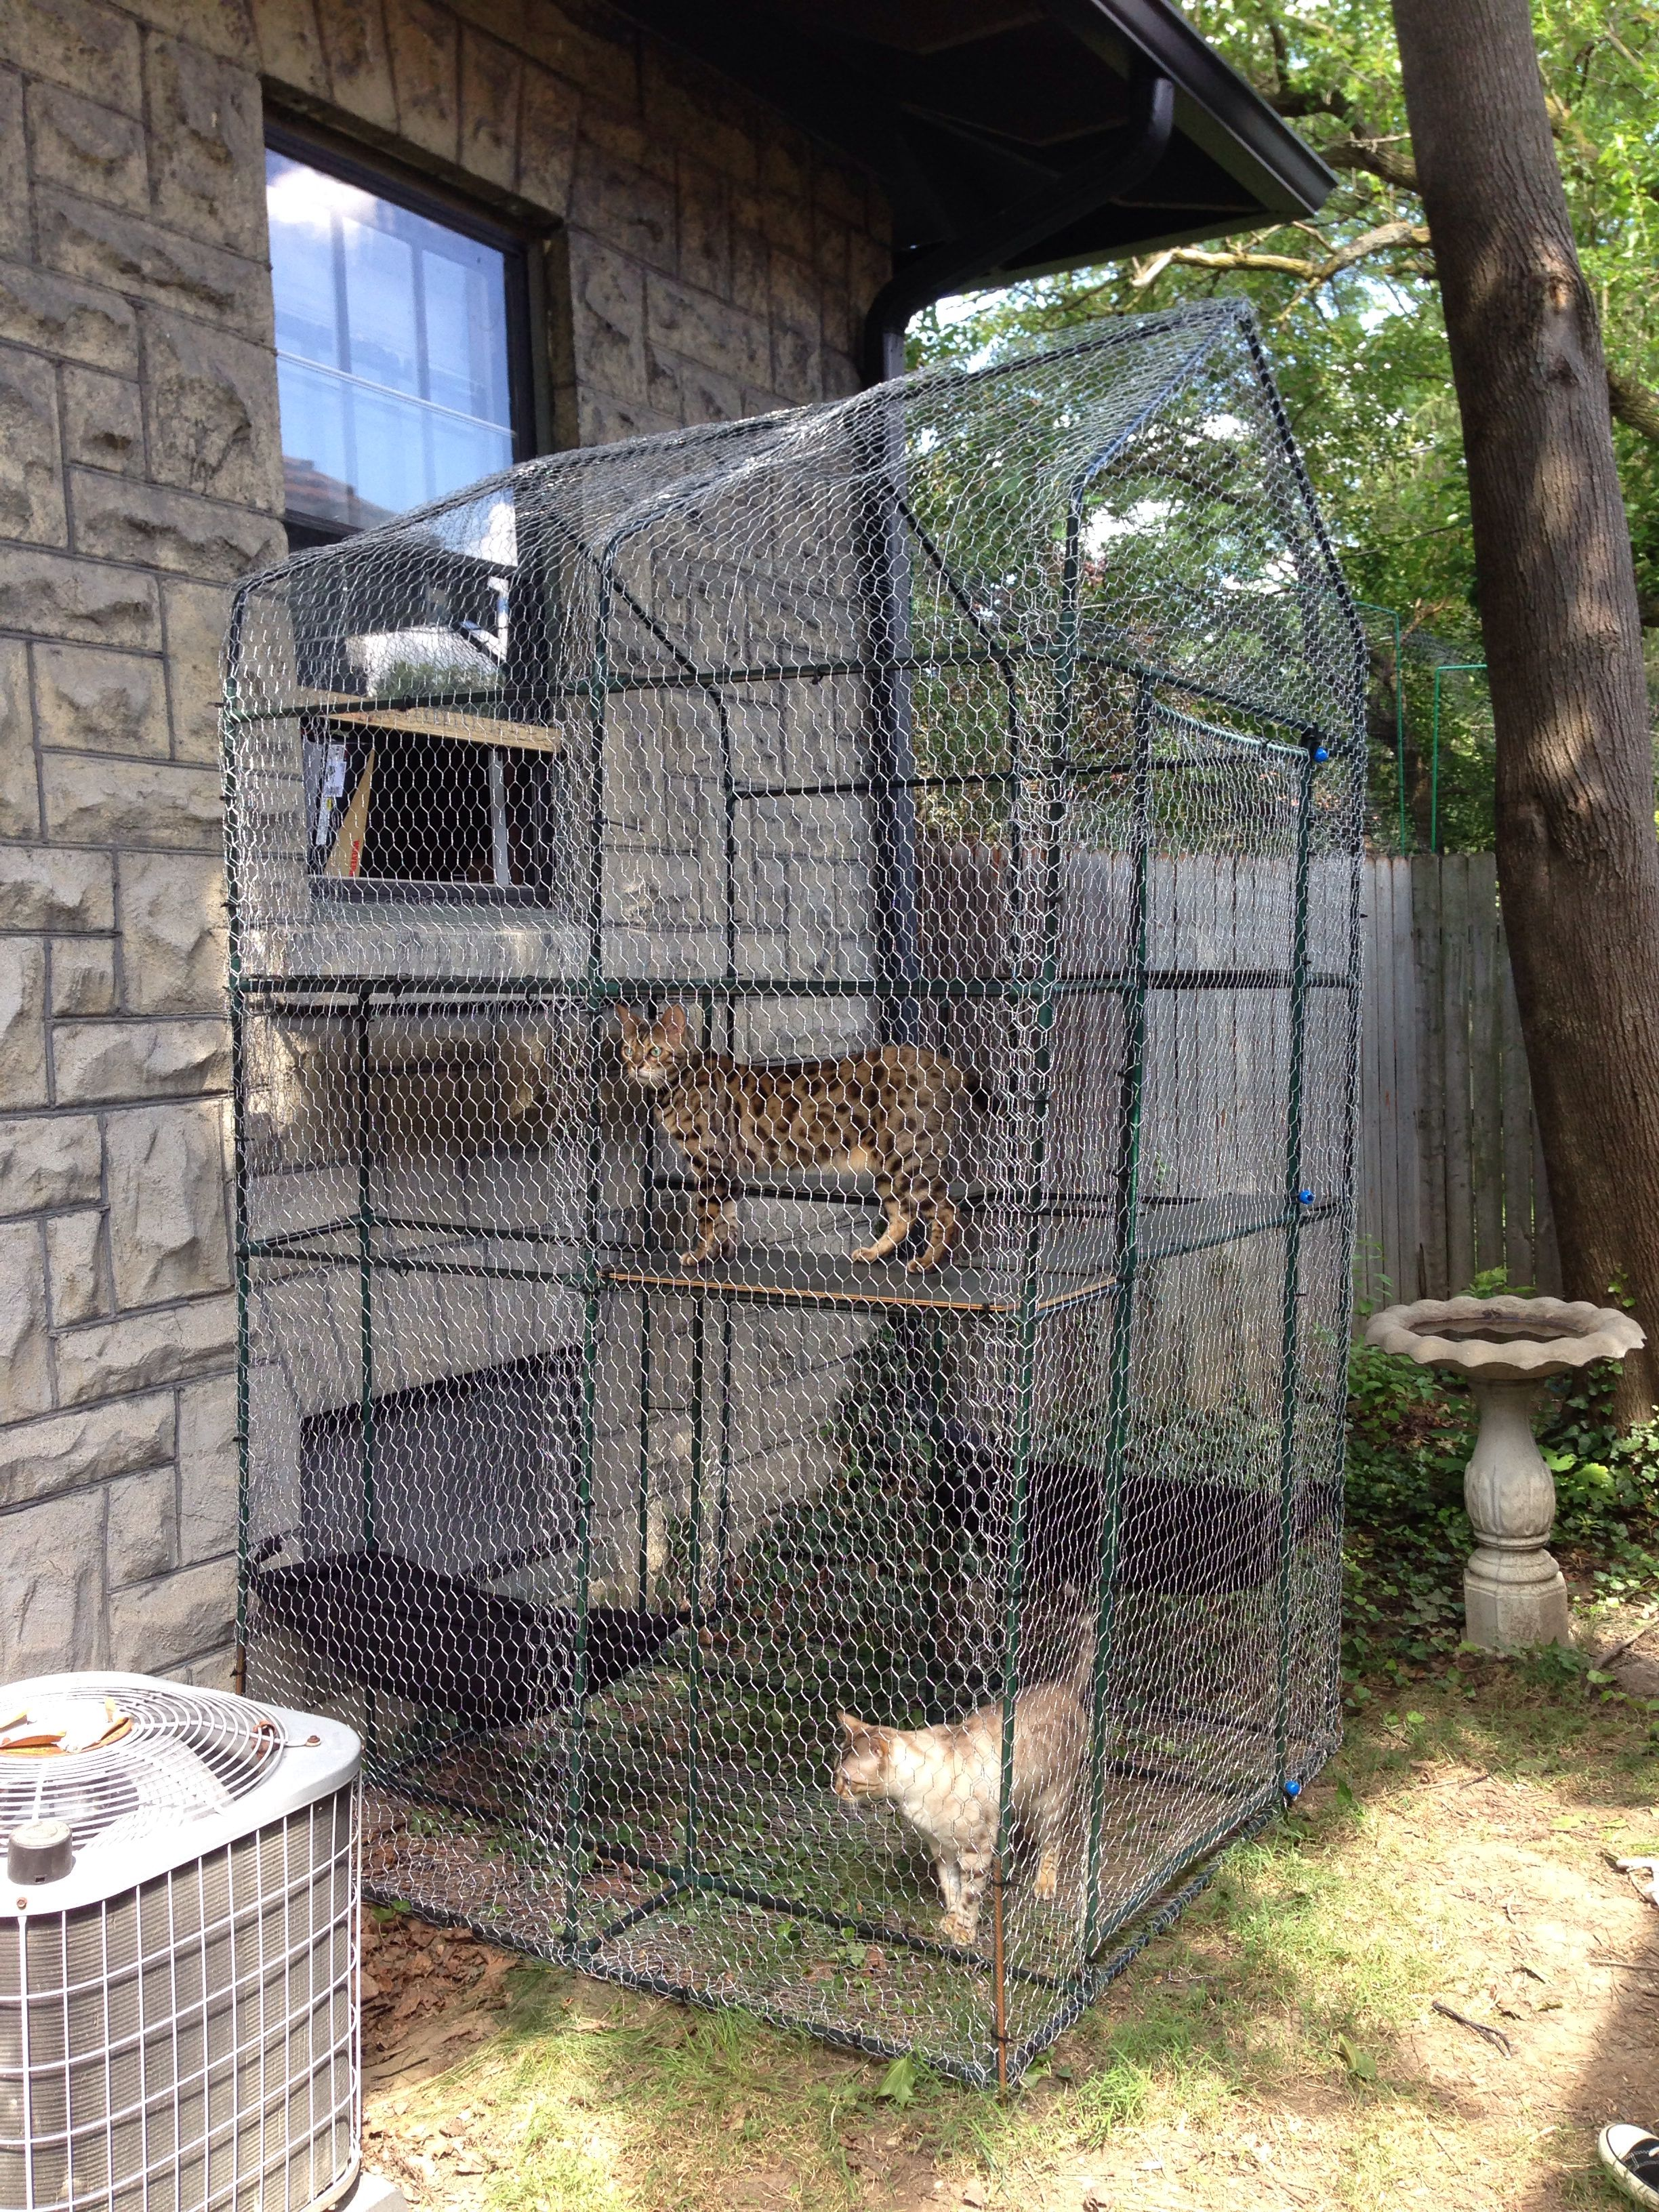 Catio For The Cats To Go Outside Via The Window I Modified A Small Greenhouse Frame I Found On Clearance Cat Patio Outdoor Pet Enclosure Catio Ideas For Cats